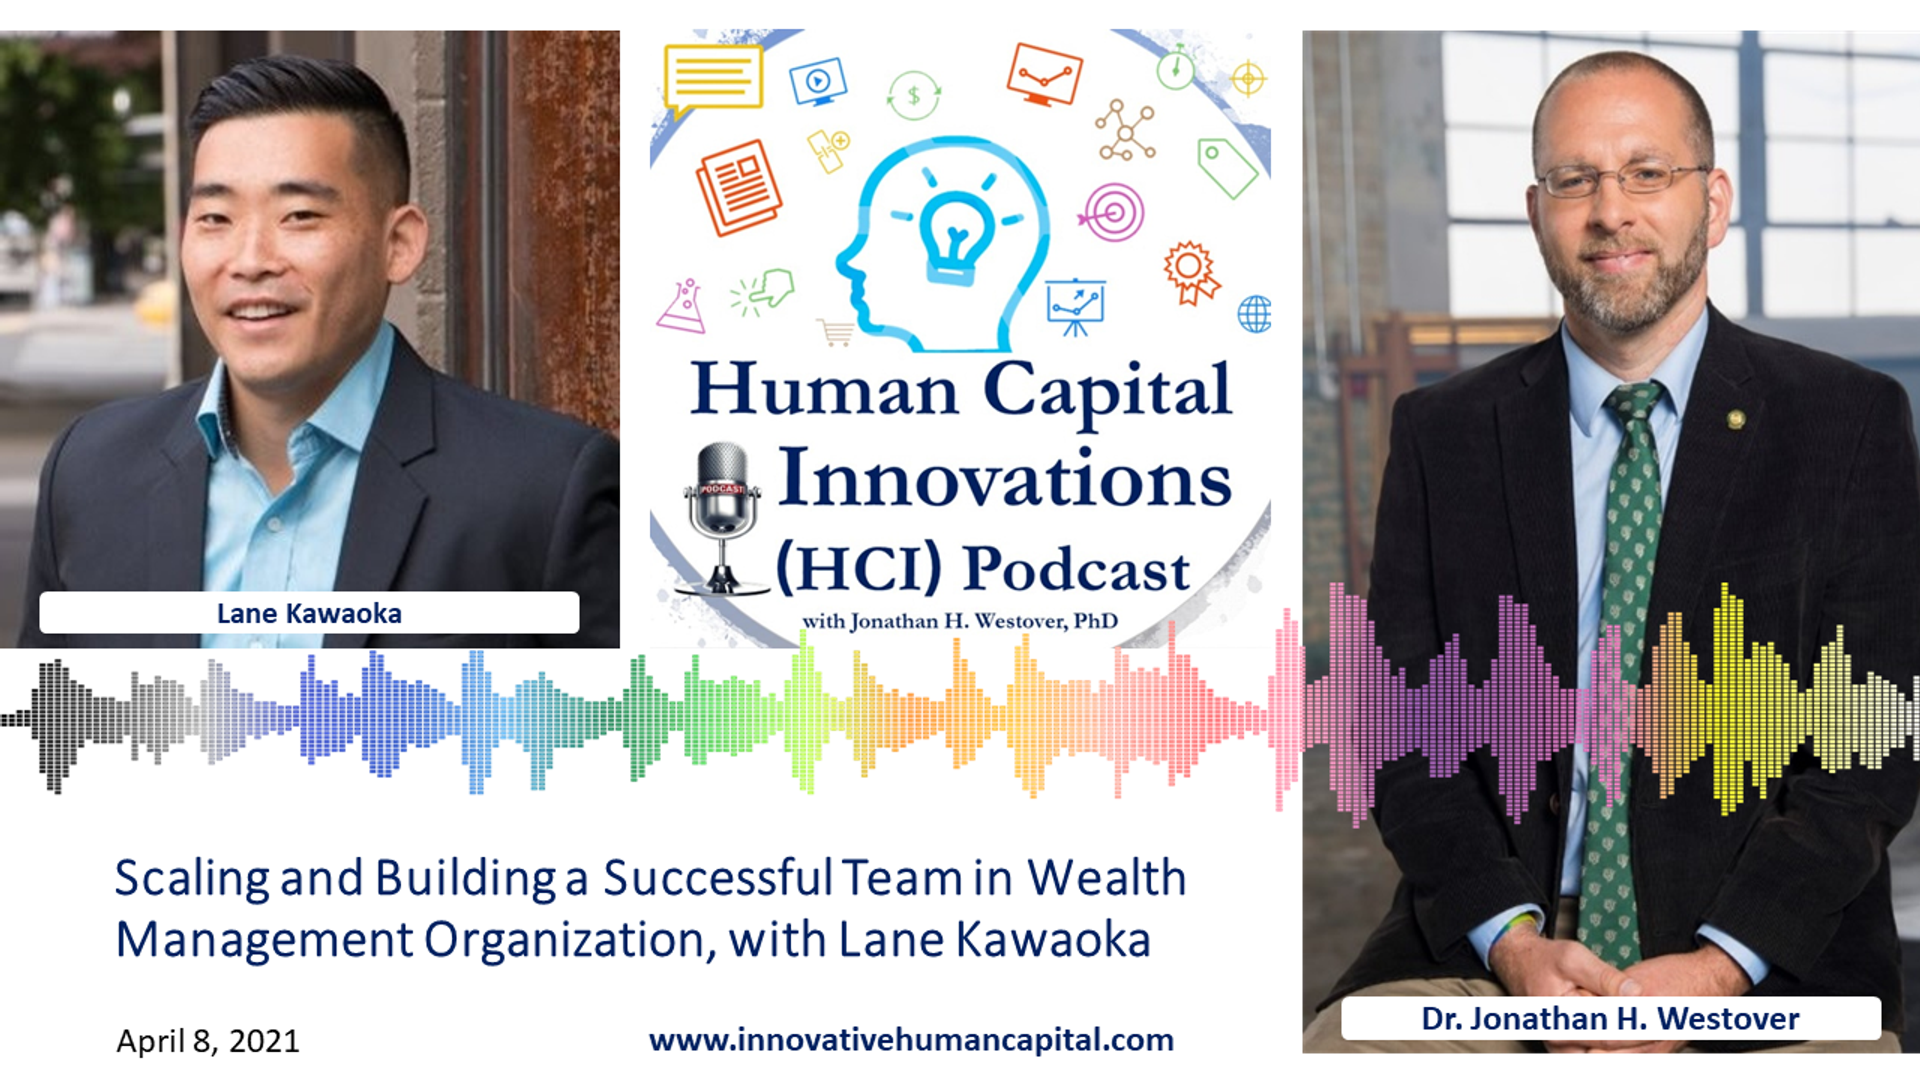 Scaling & Building a Successful Team in Wealth Management Organization